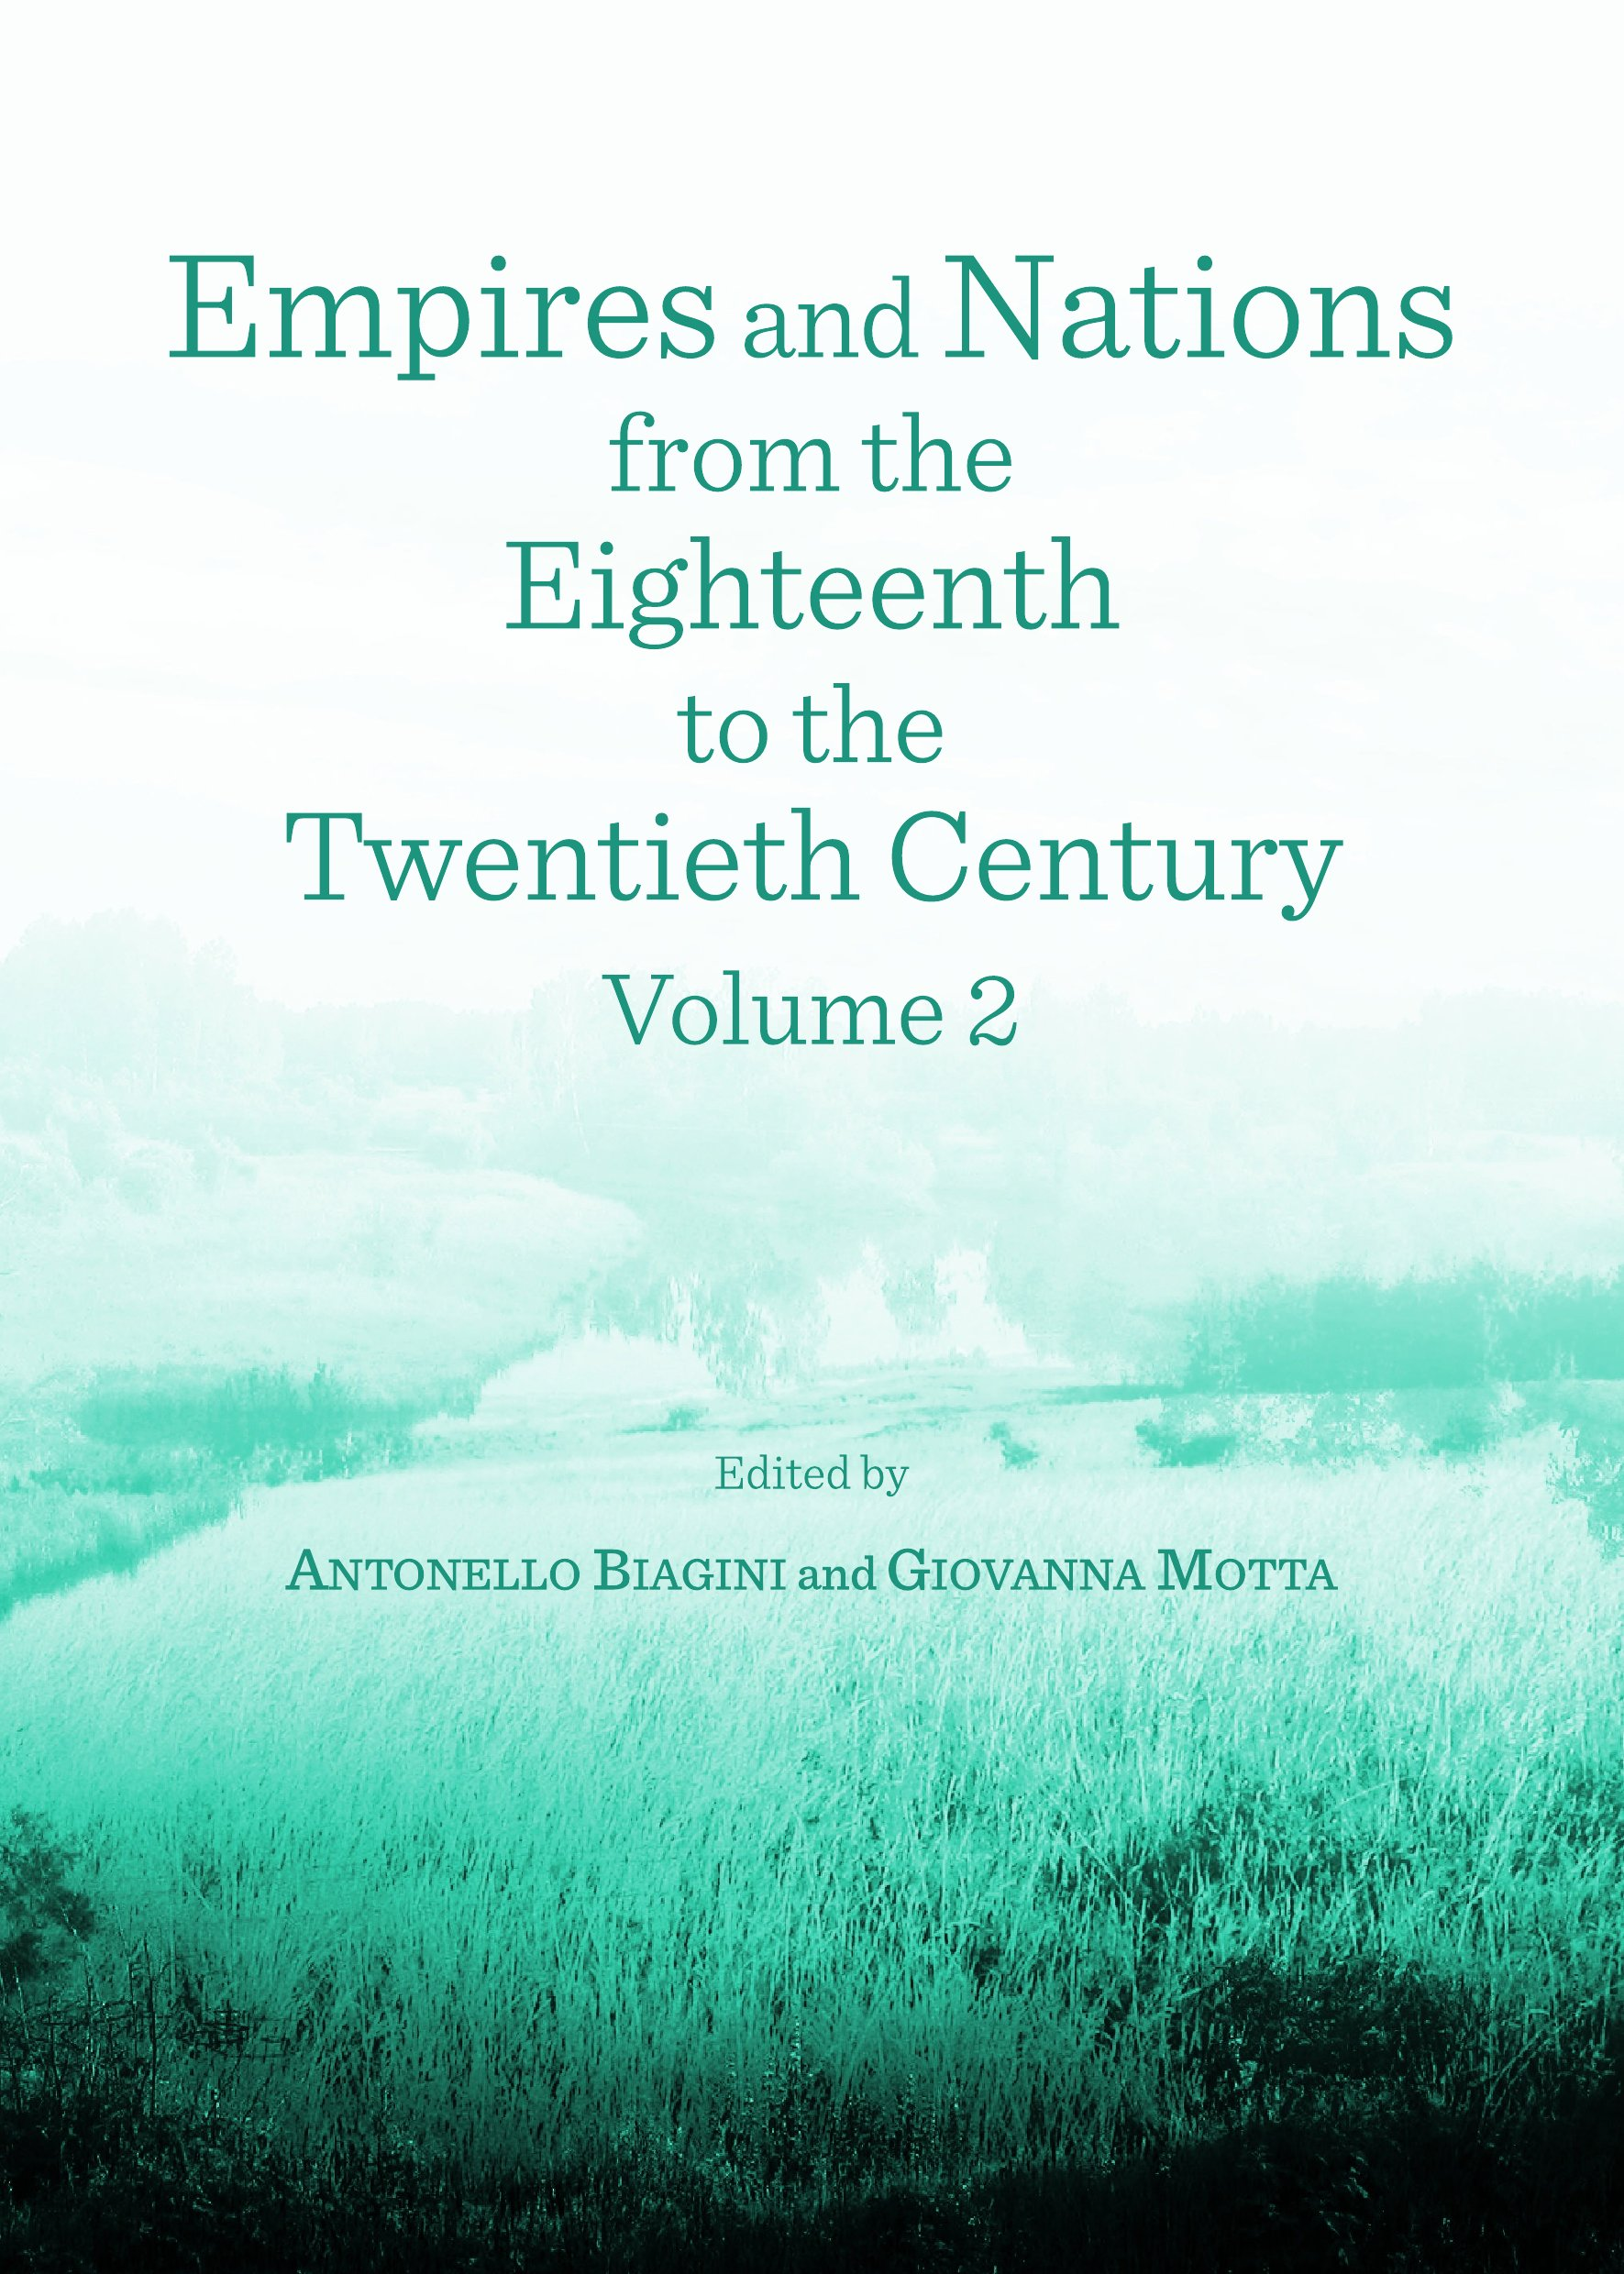 Empires and Nations from the Eighteenth to the Twentieth Century: Volume 2